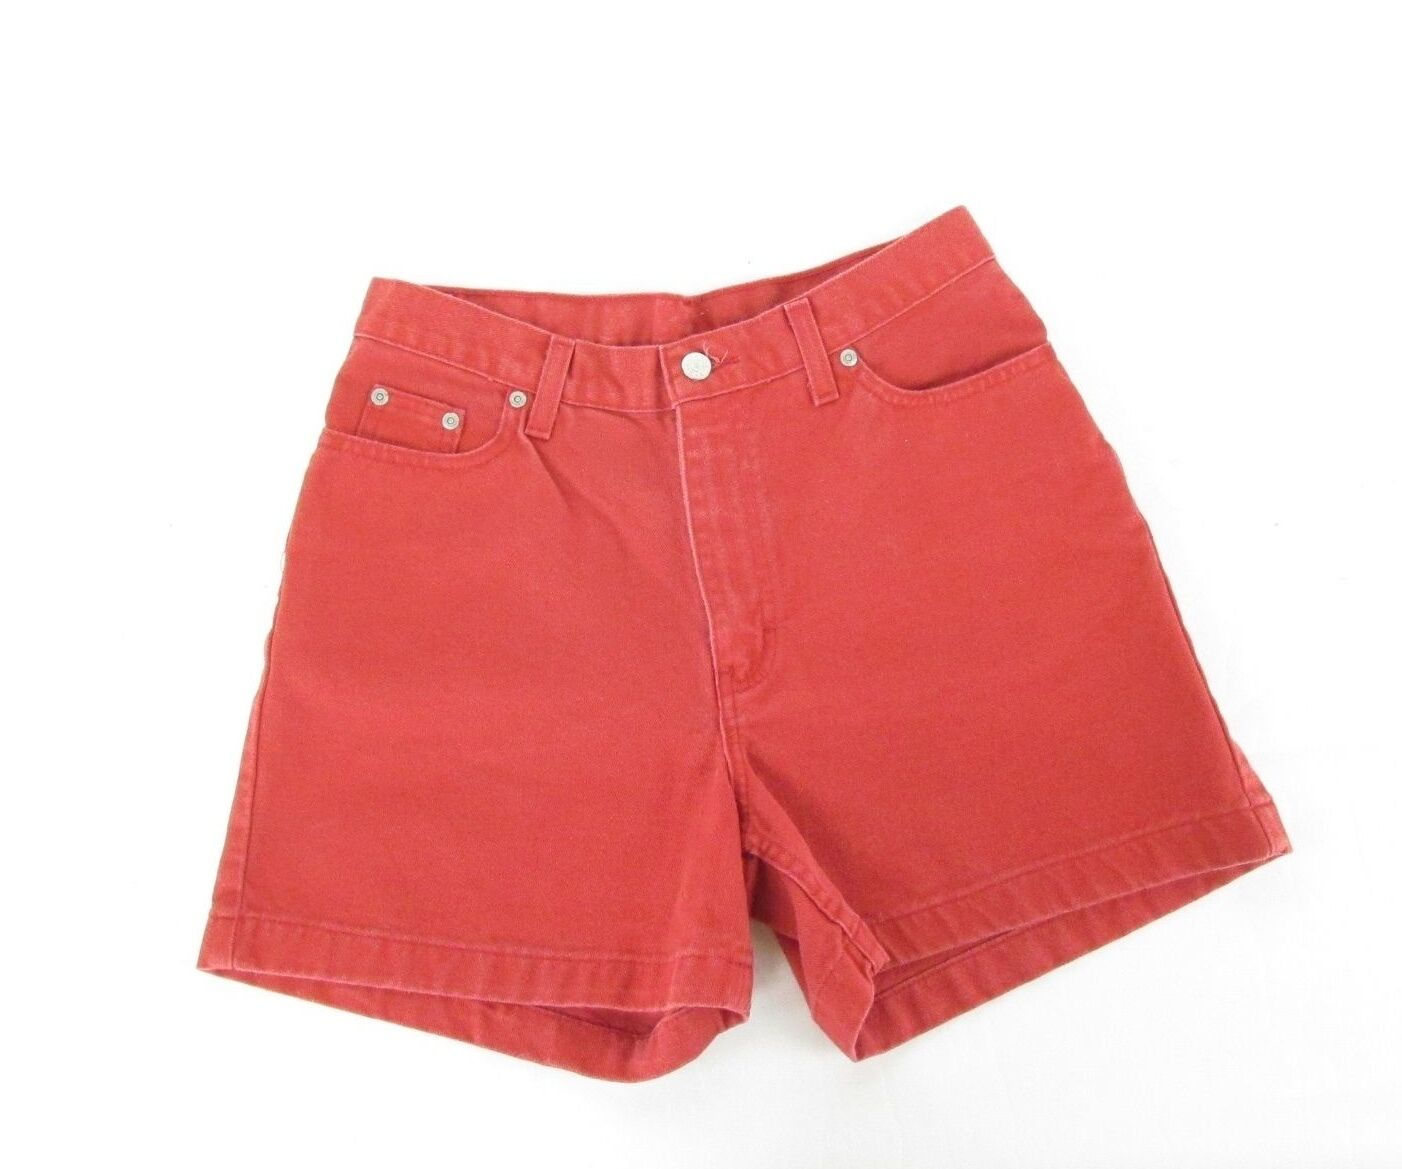 Vintage 90s colord Red HIGH WAISTED WOMEN'S DENIM JEAN SHORTS 31  Waist